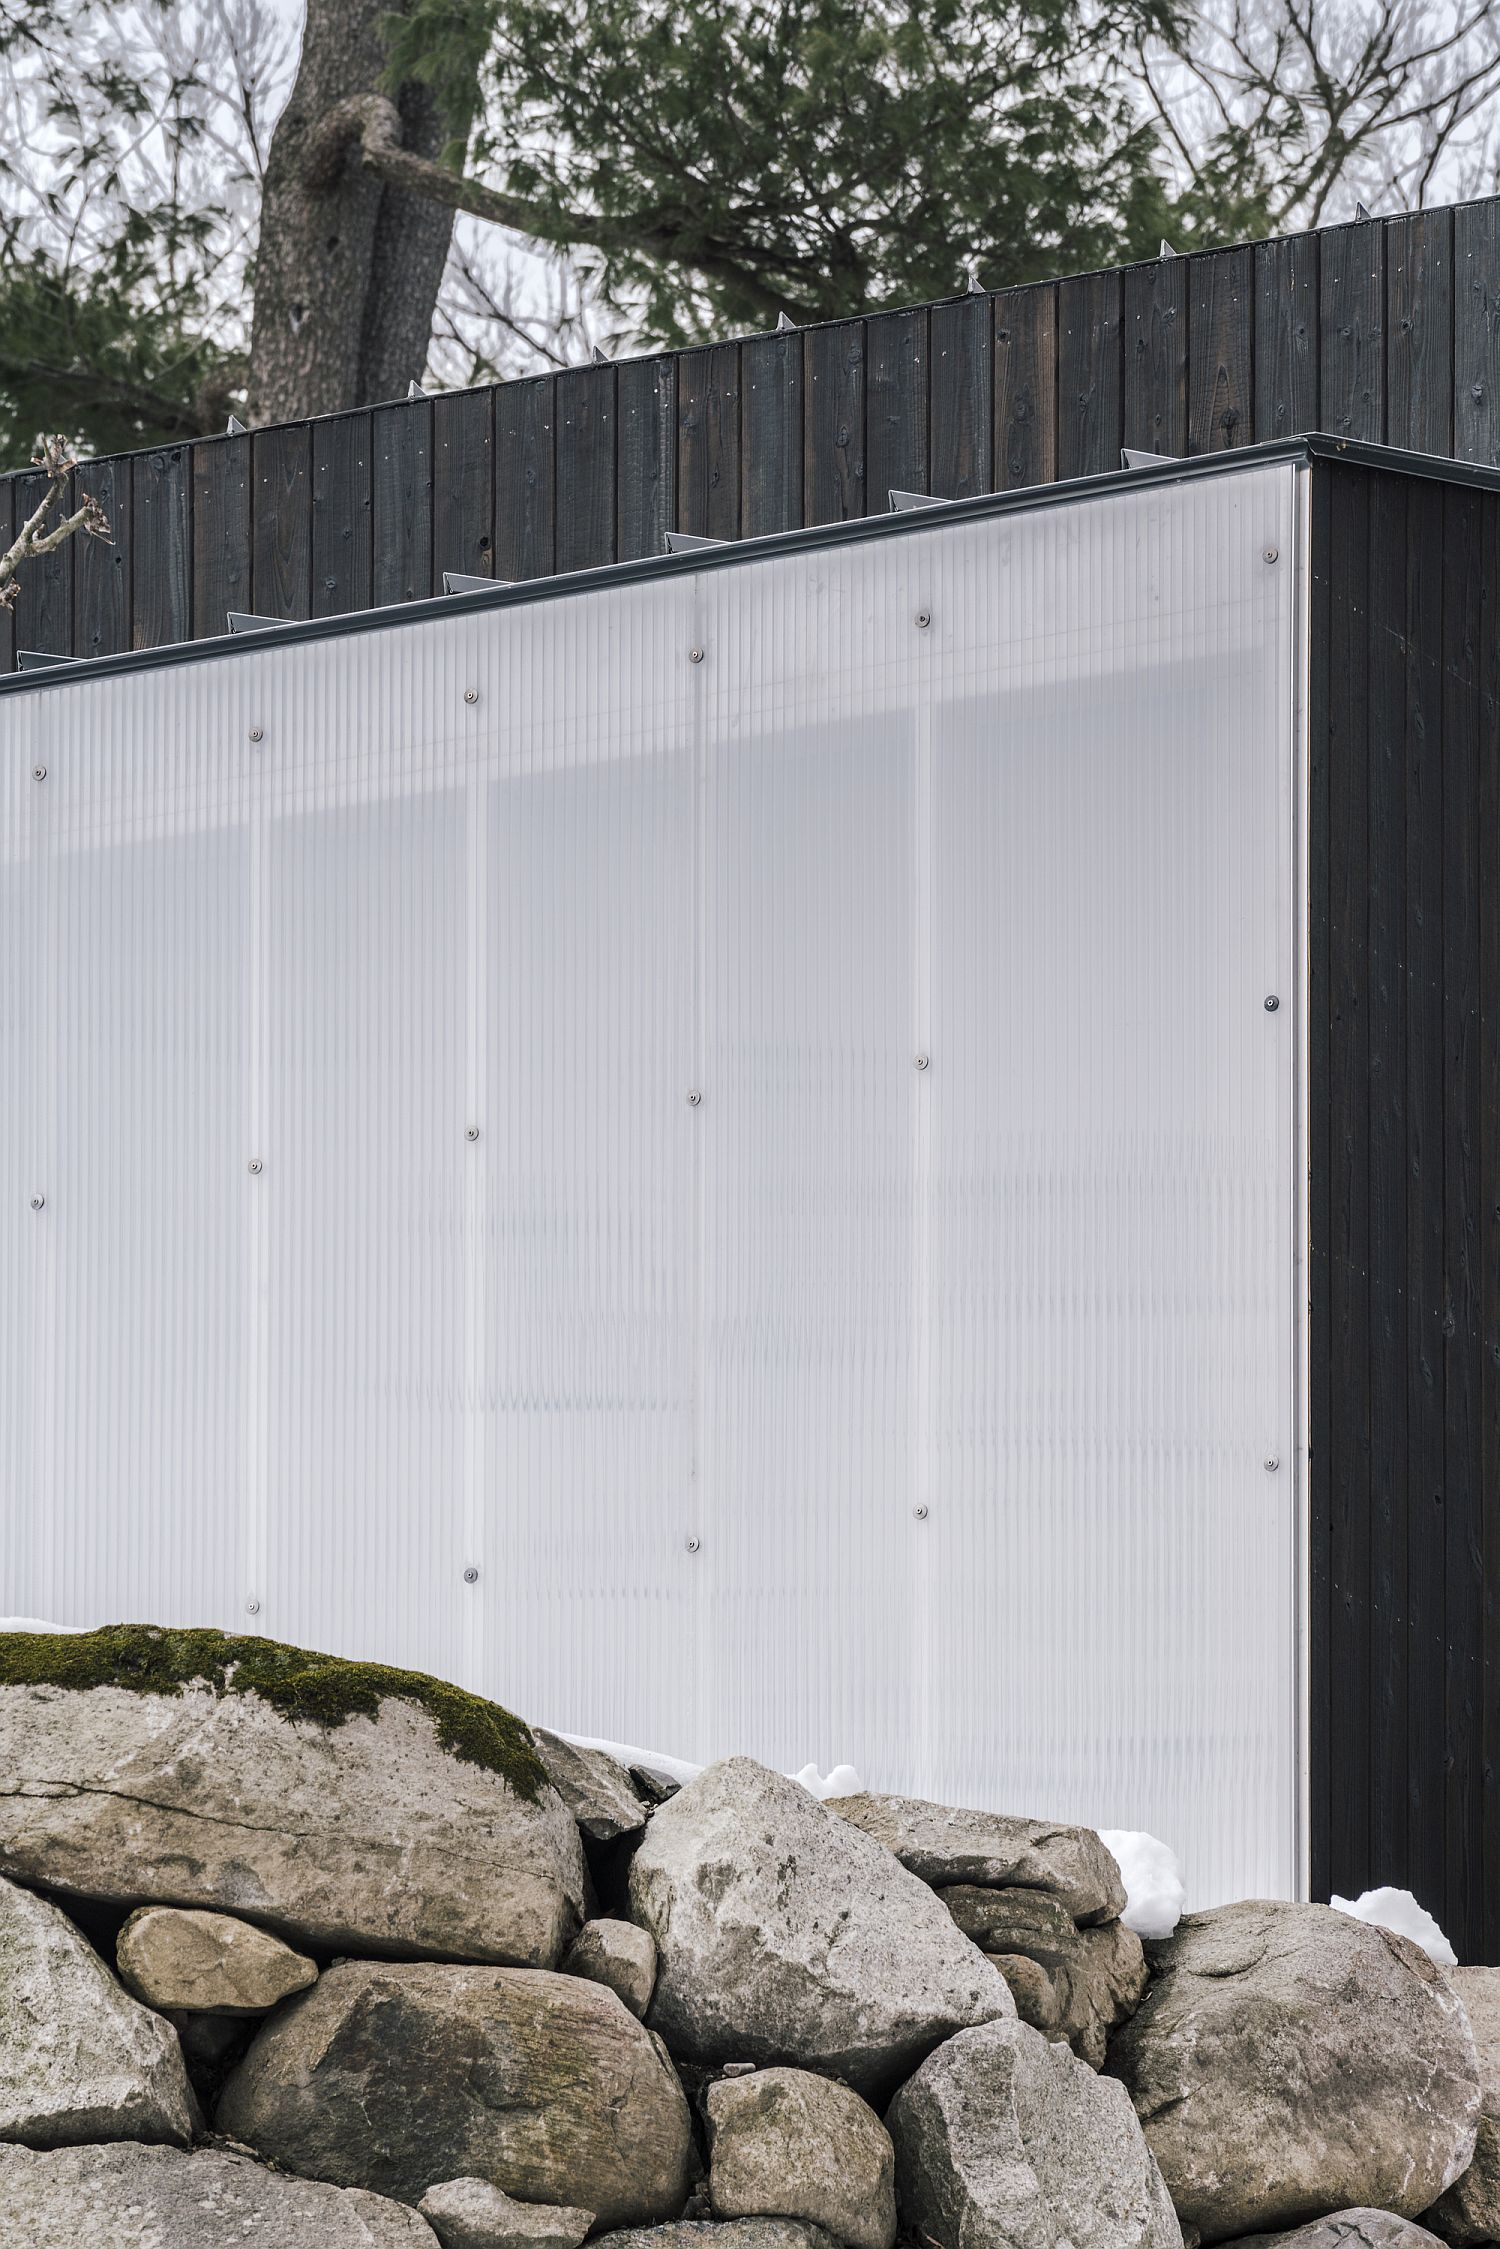 Using polycarbonate wall to bring ventilation into the small pavilion